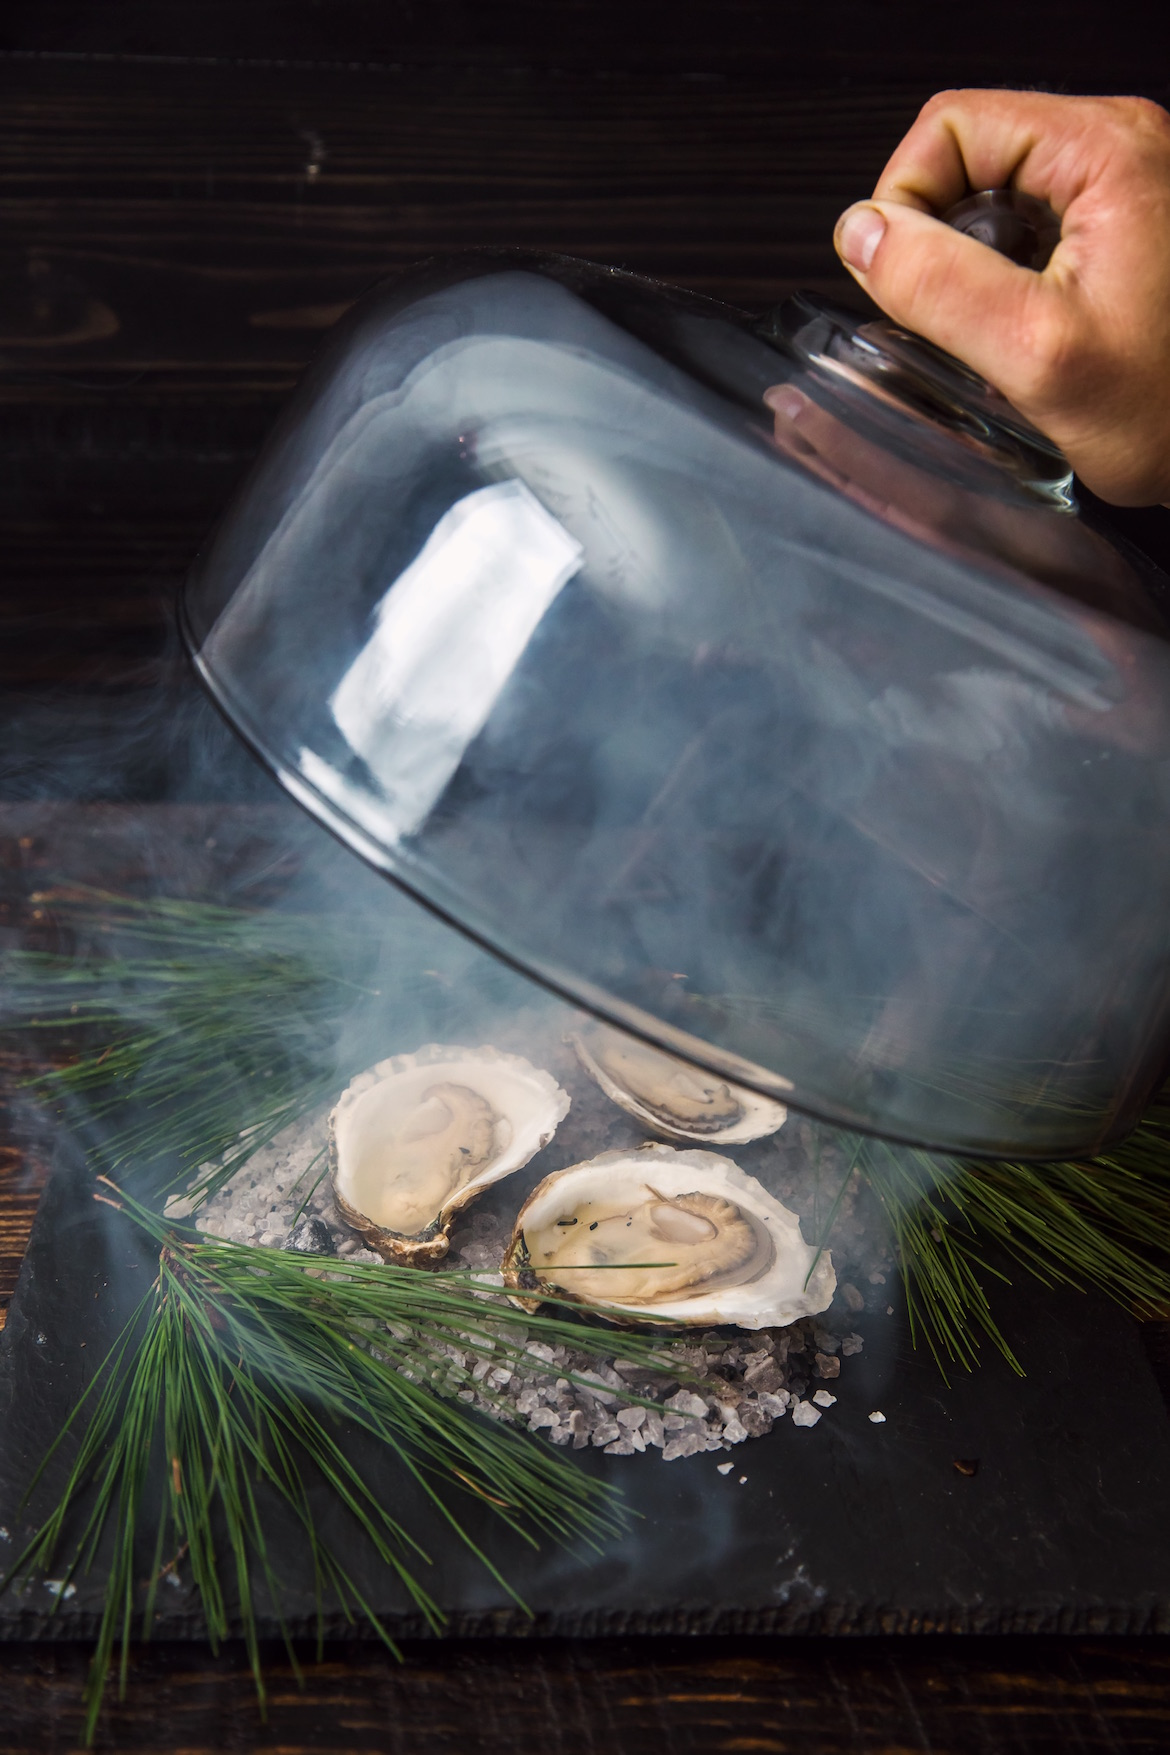 Feast of Seven Fishes - Smoked Oysters